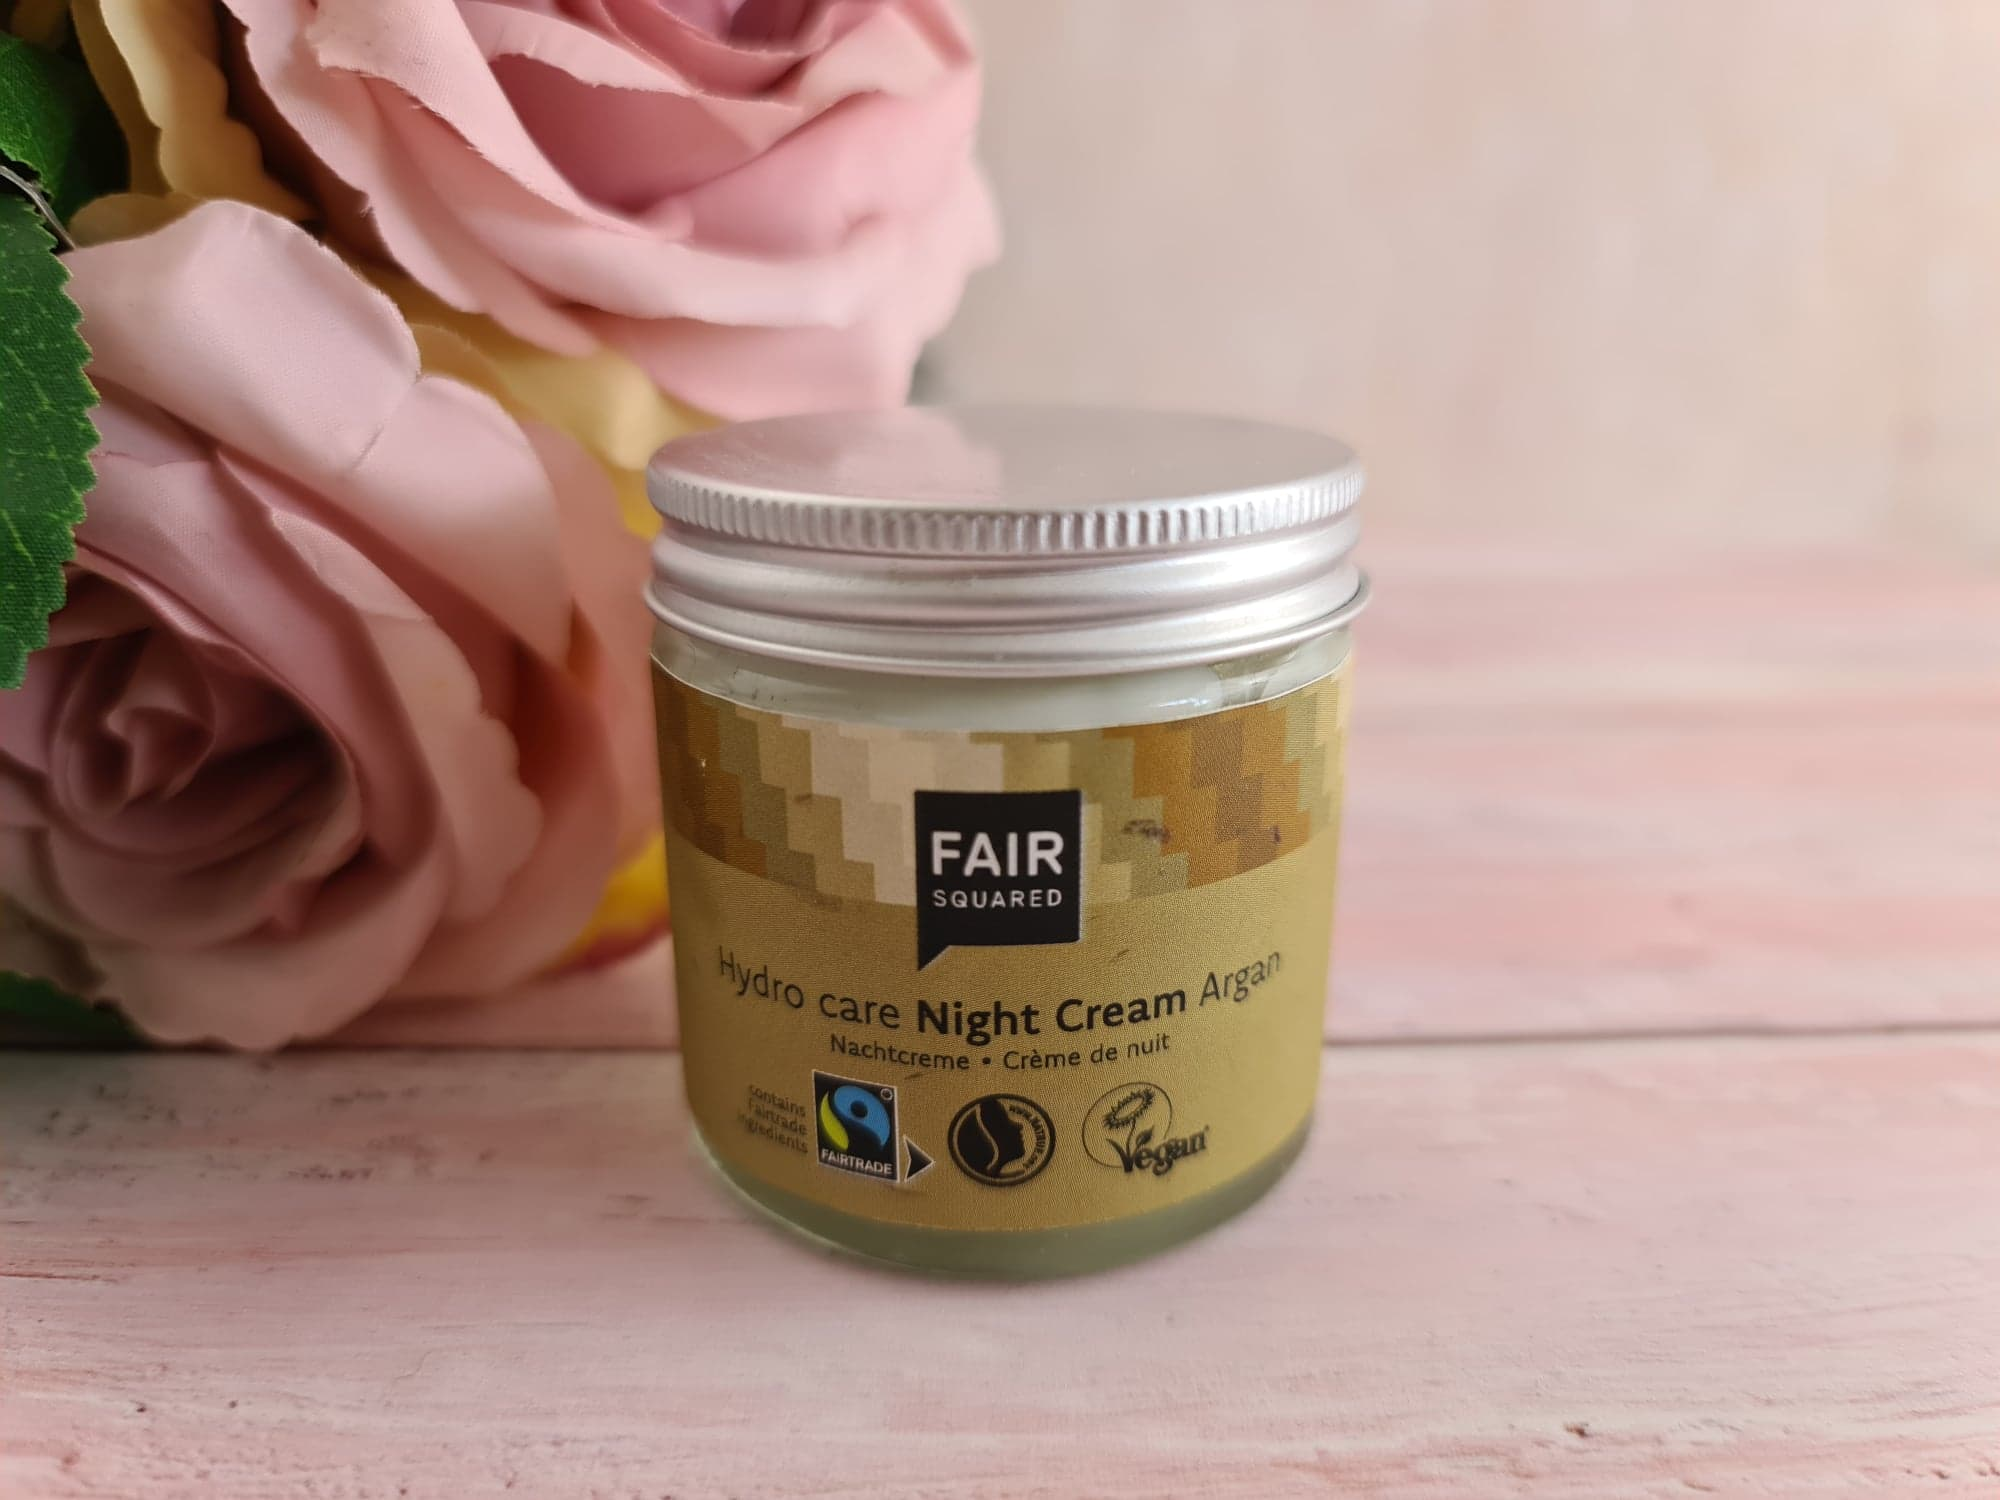 Hydro Care Night Cream Argan